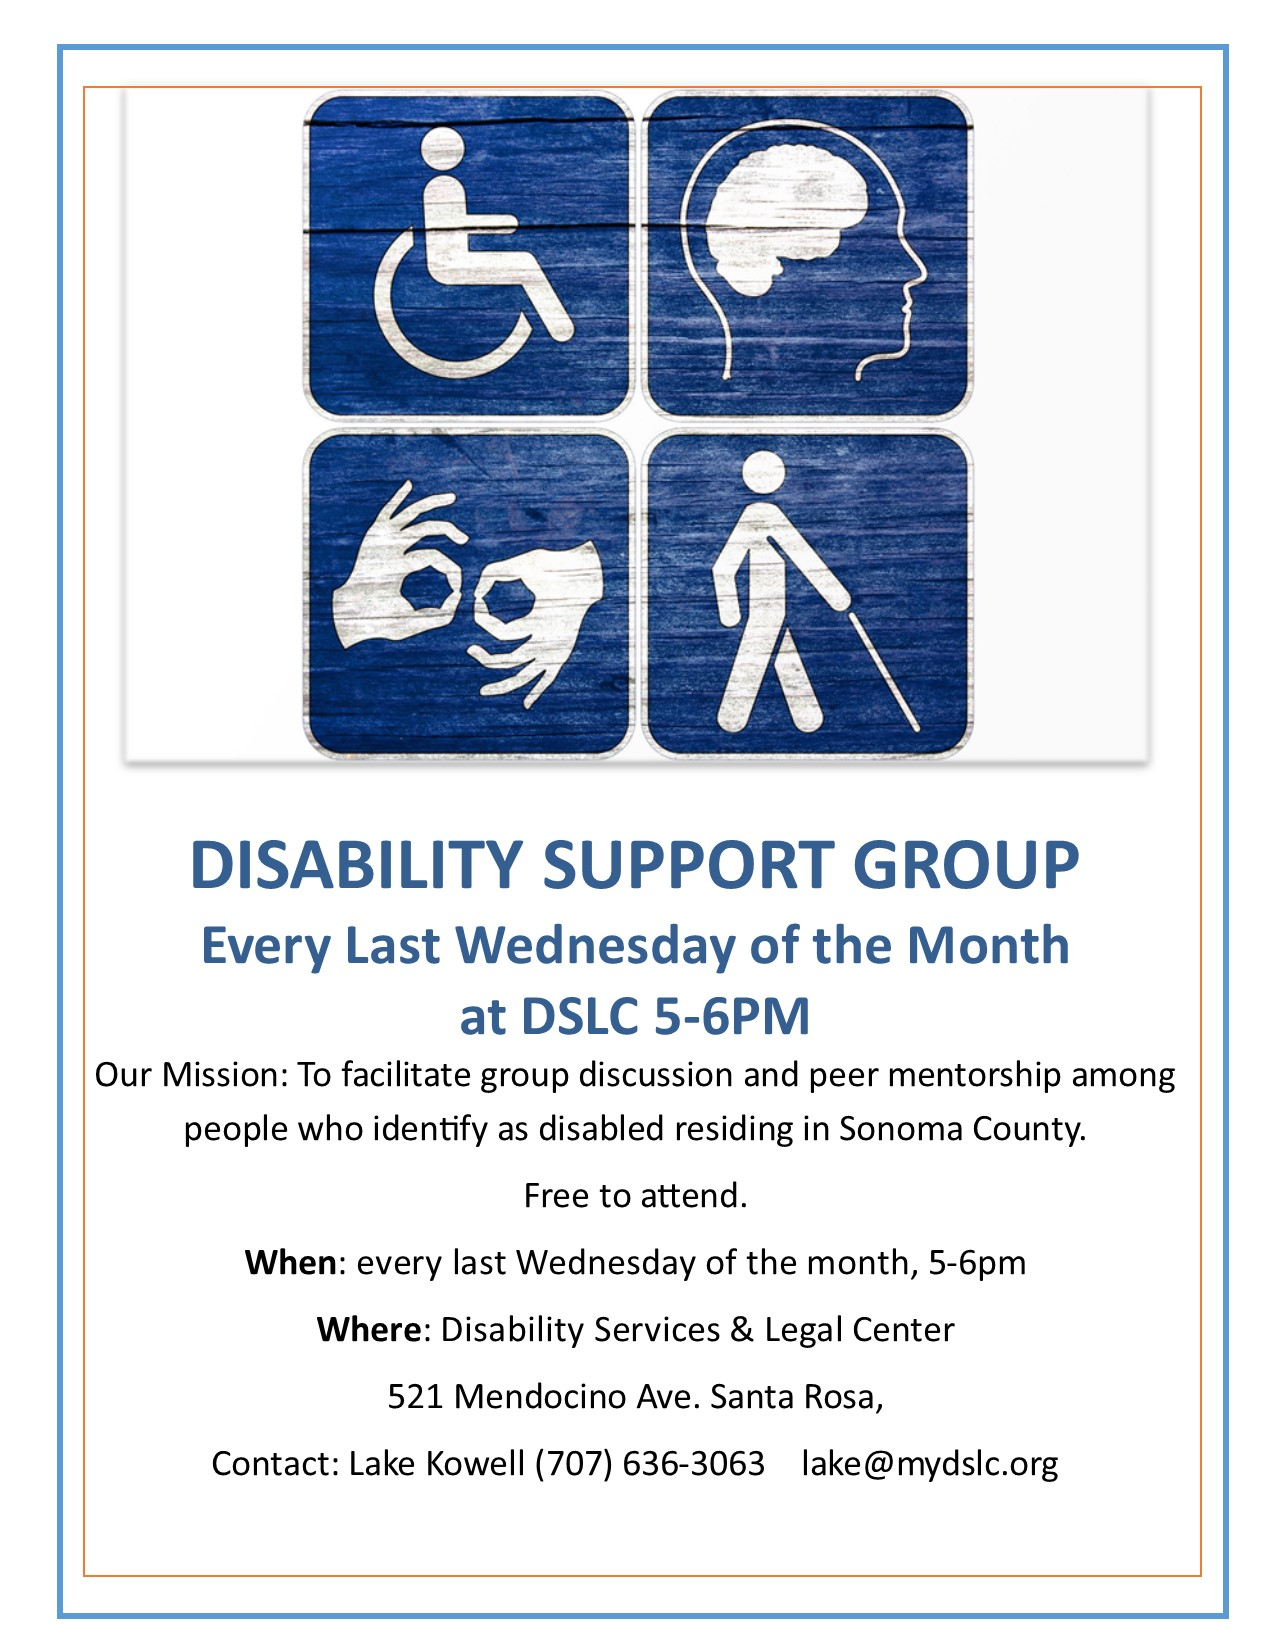 Disability Peer Support Group every last Wednesday of the month at DSLC office 5-6 pm